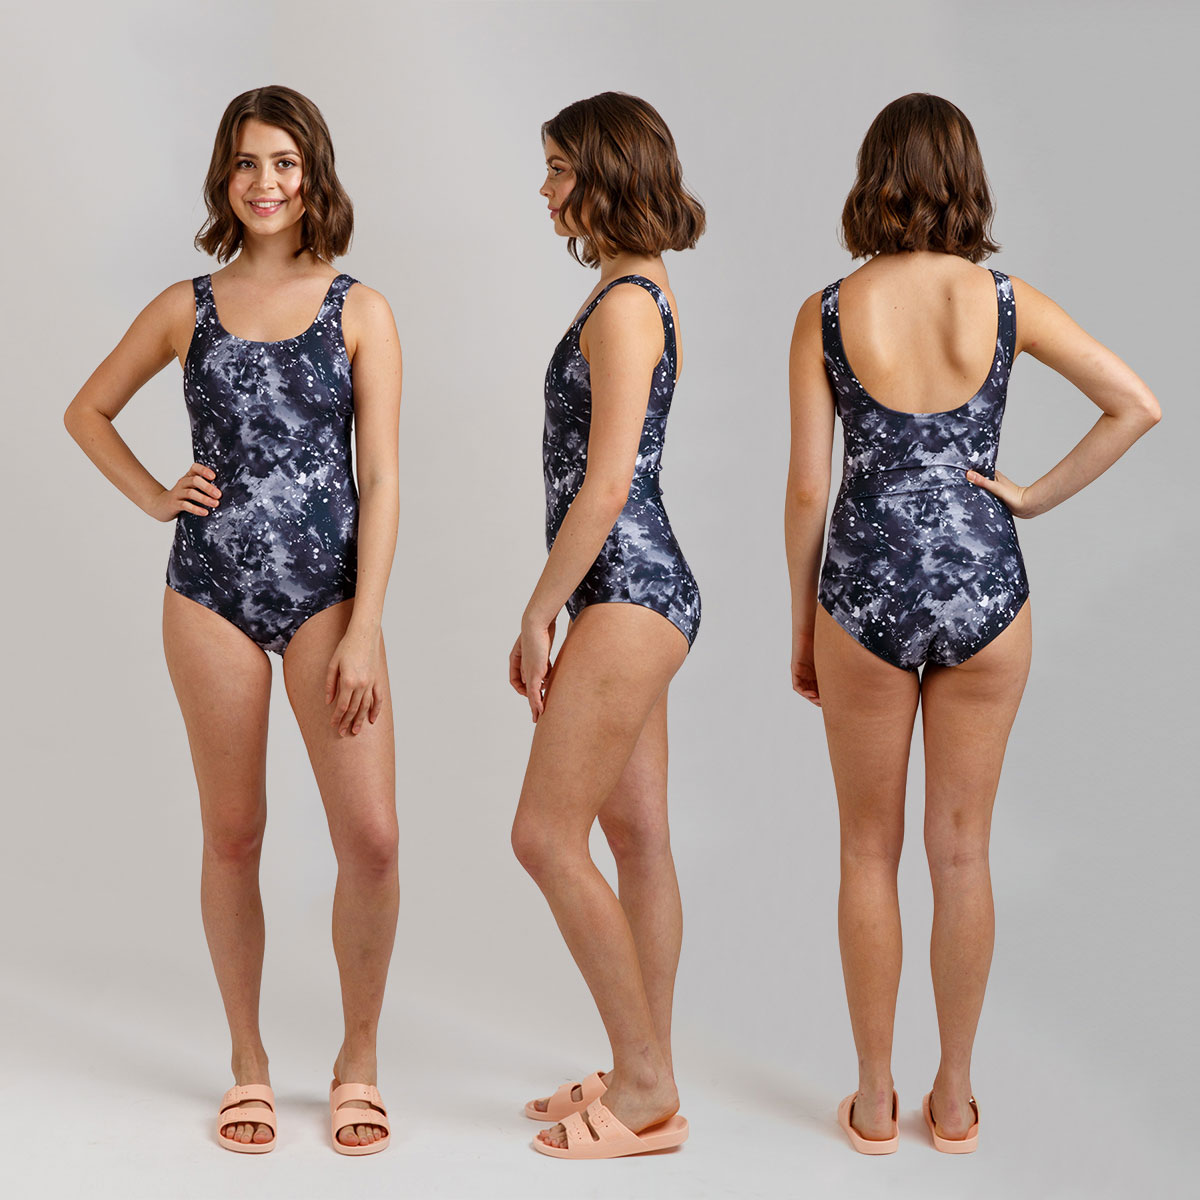 Megan Nielsen Cottesloe Swimsuit View B // Sizes 0-20